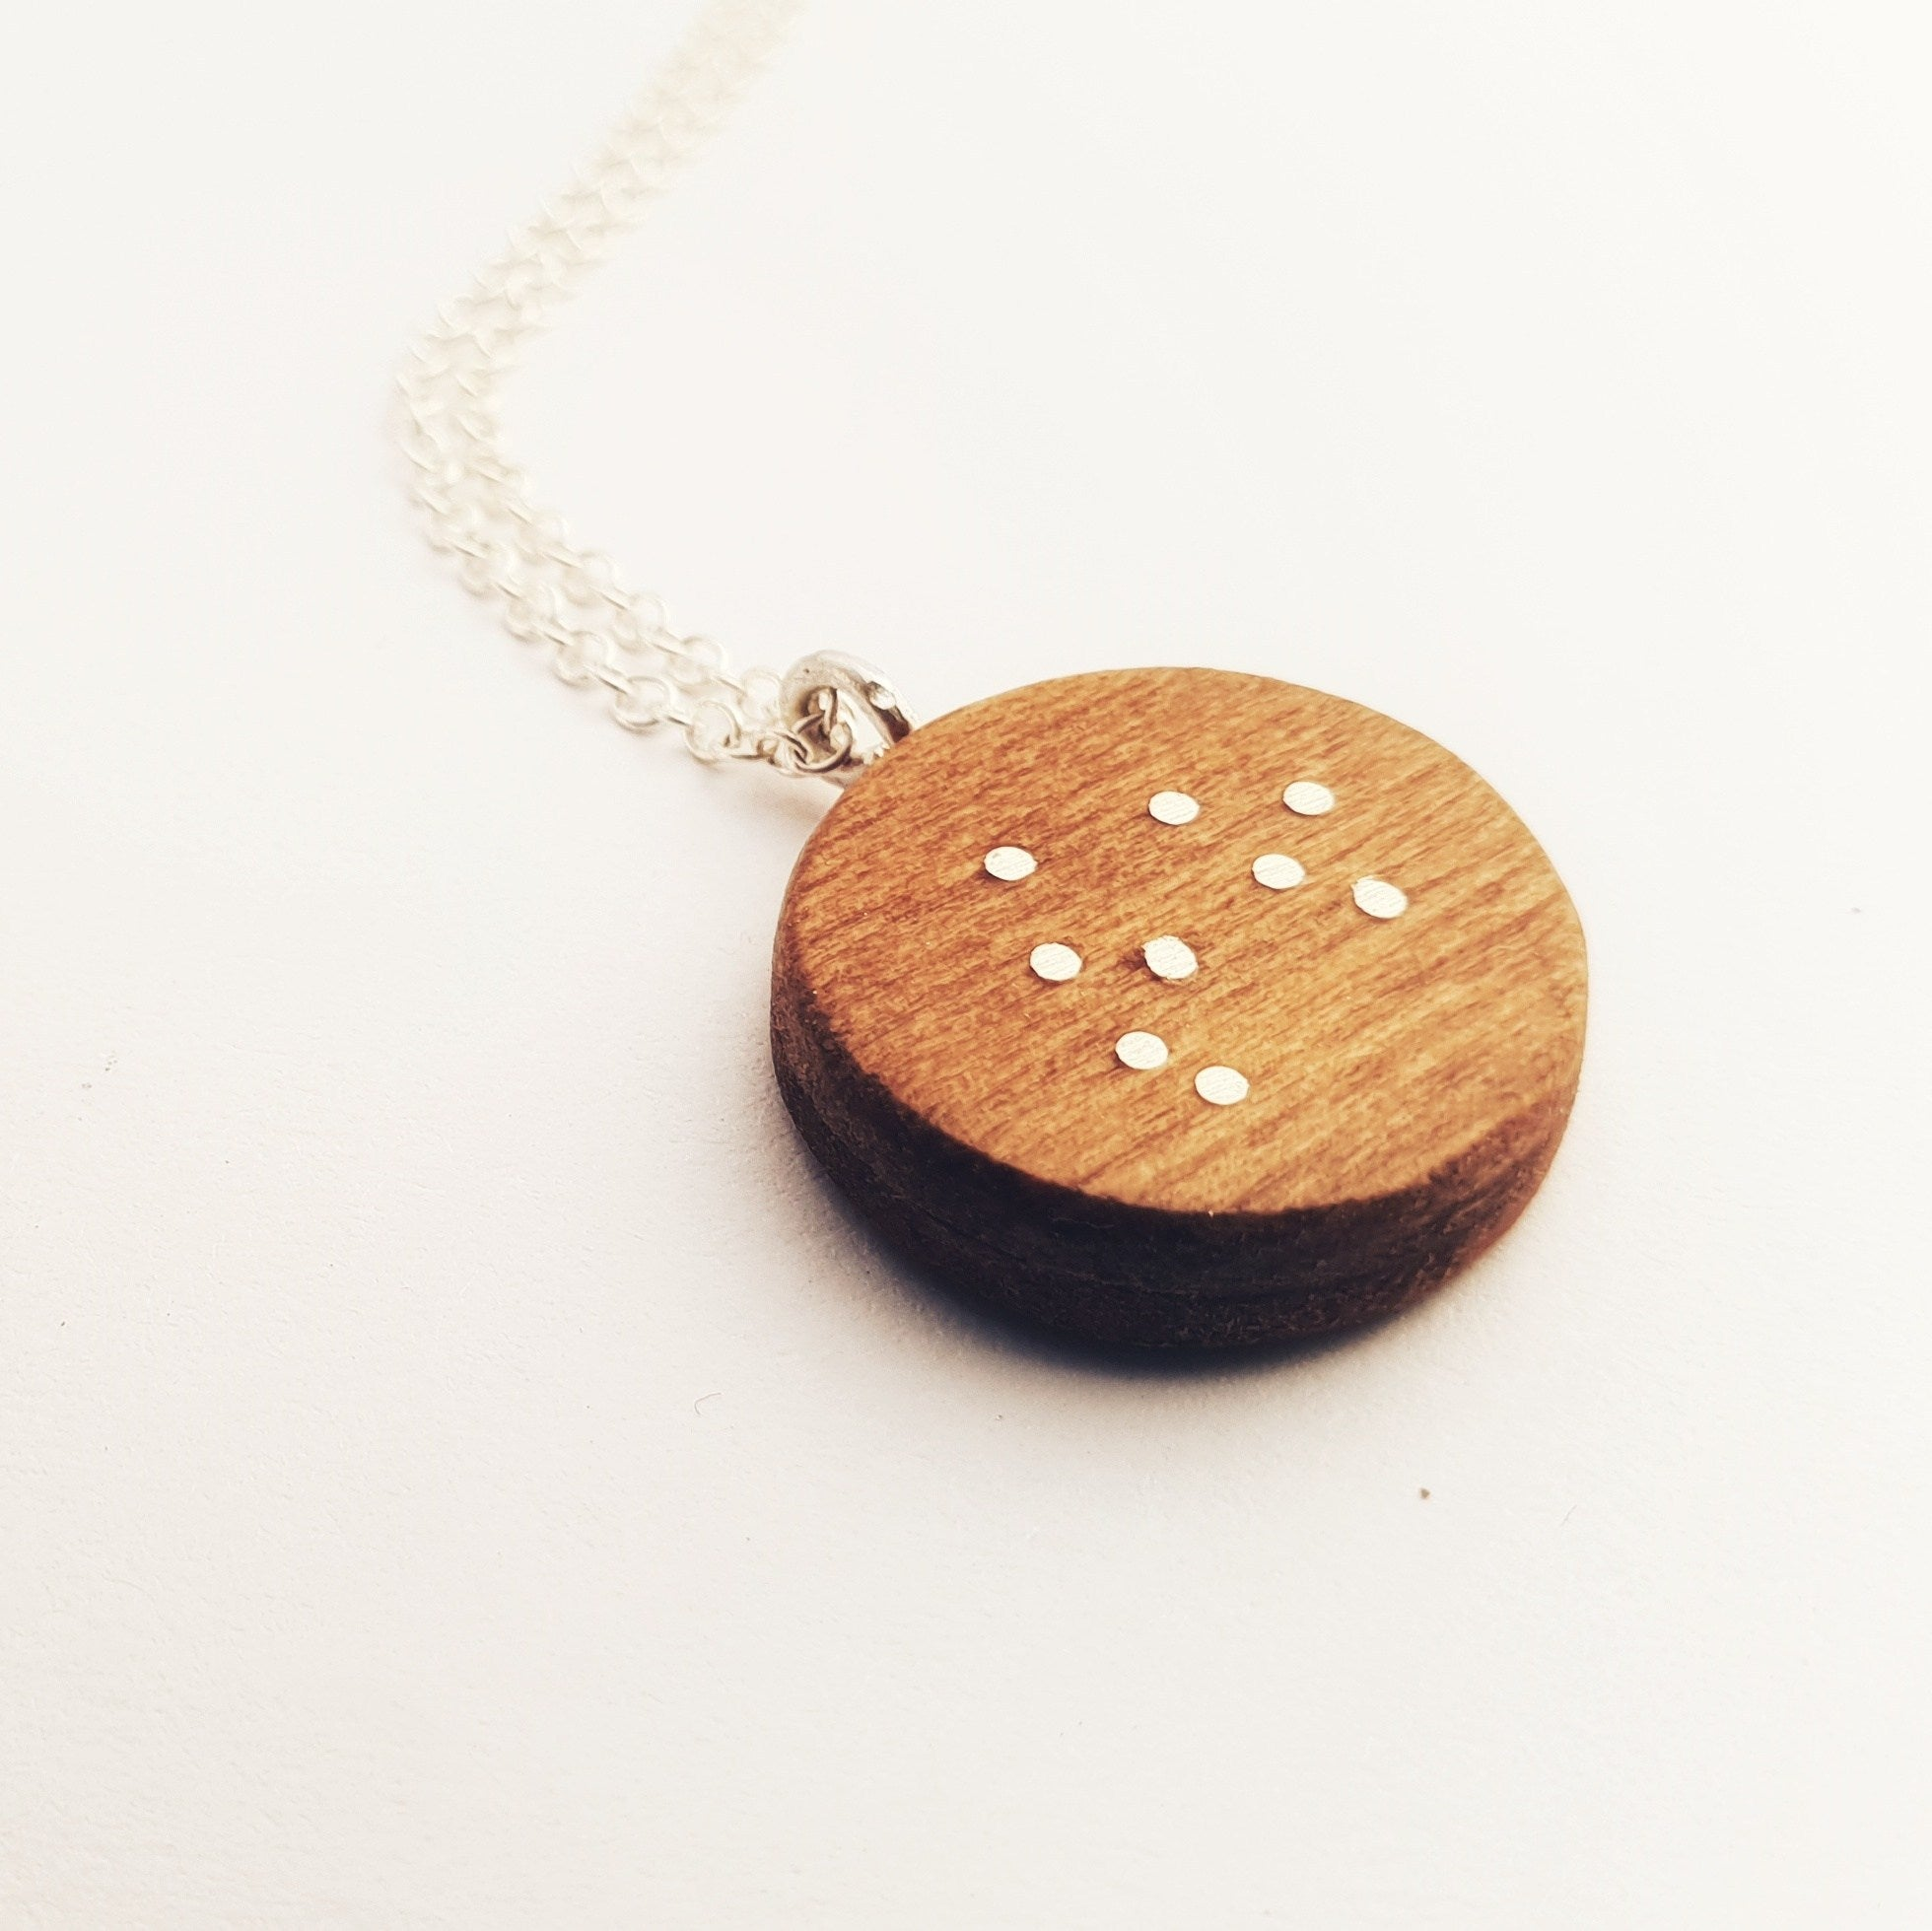 smn012 small star map necklace 1